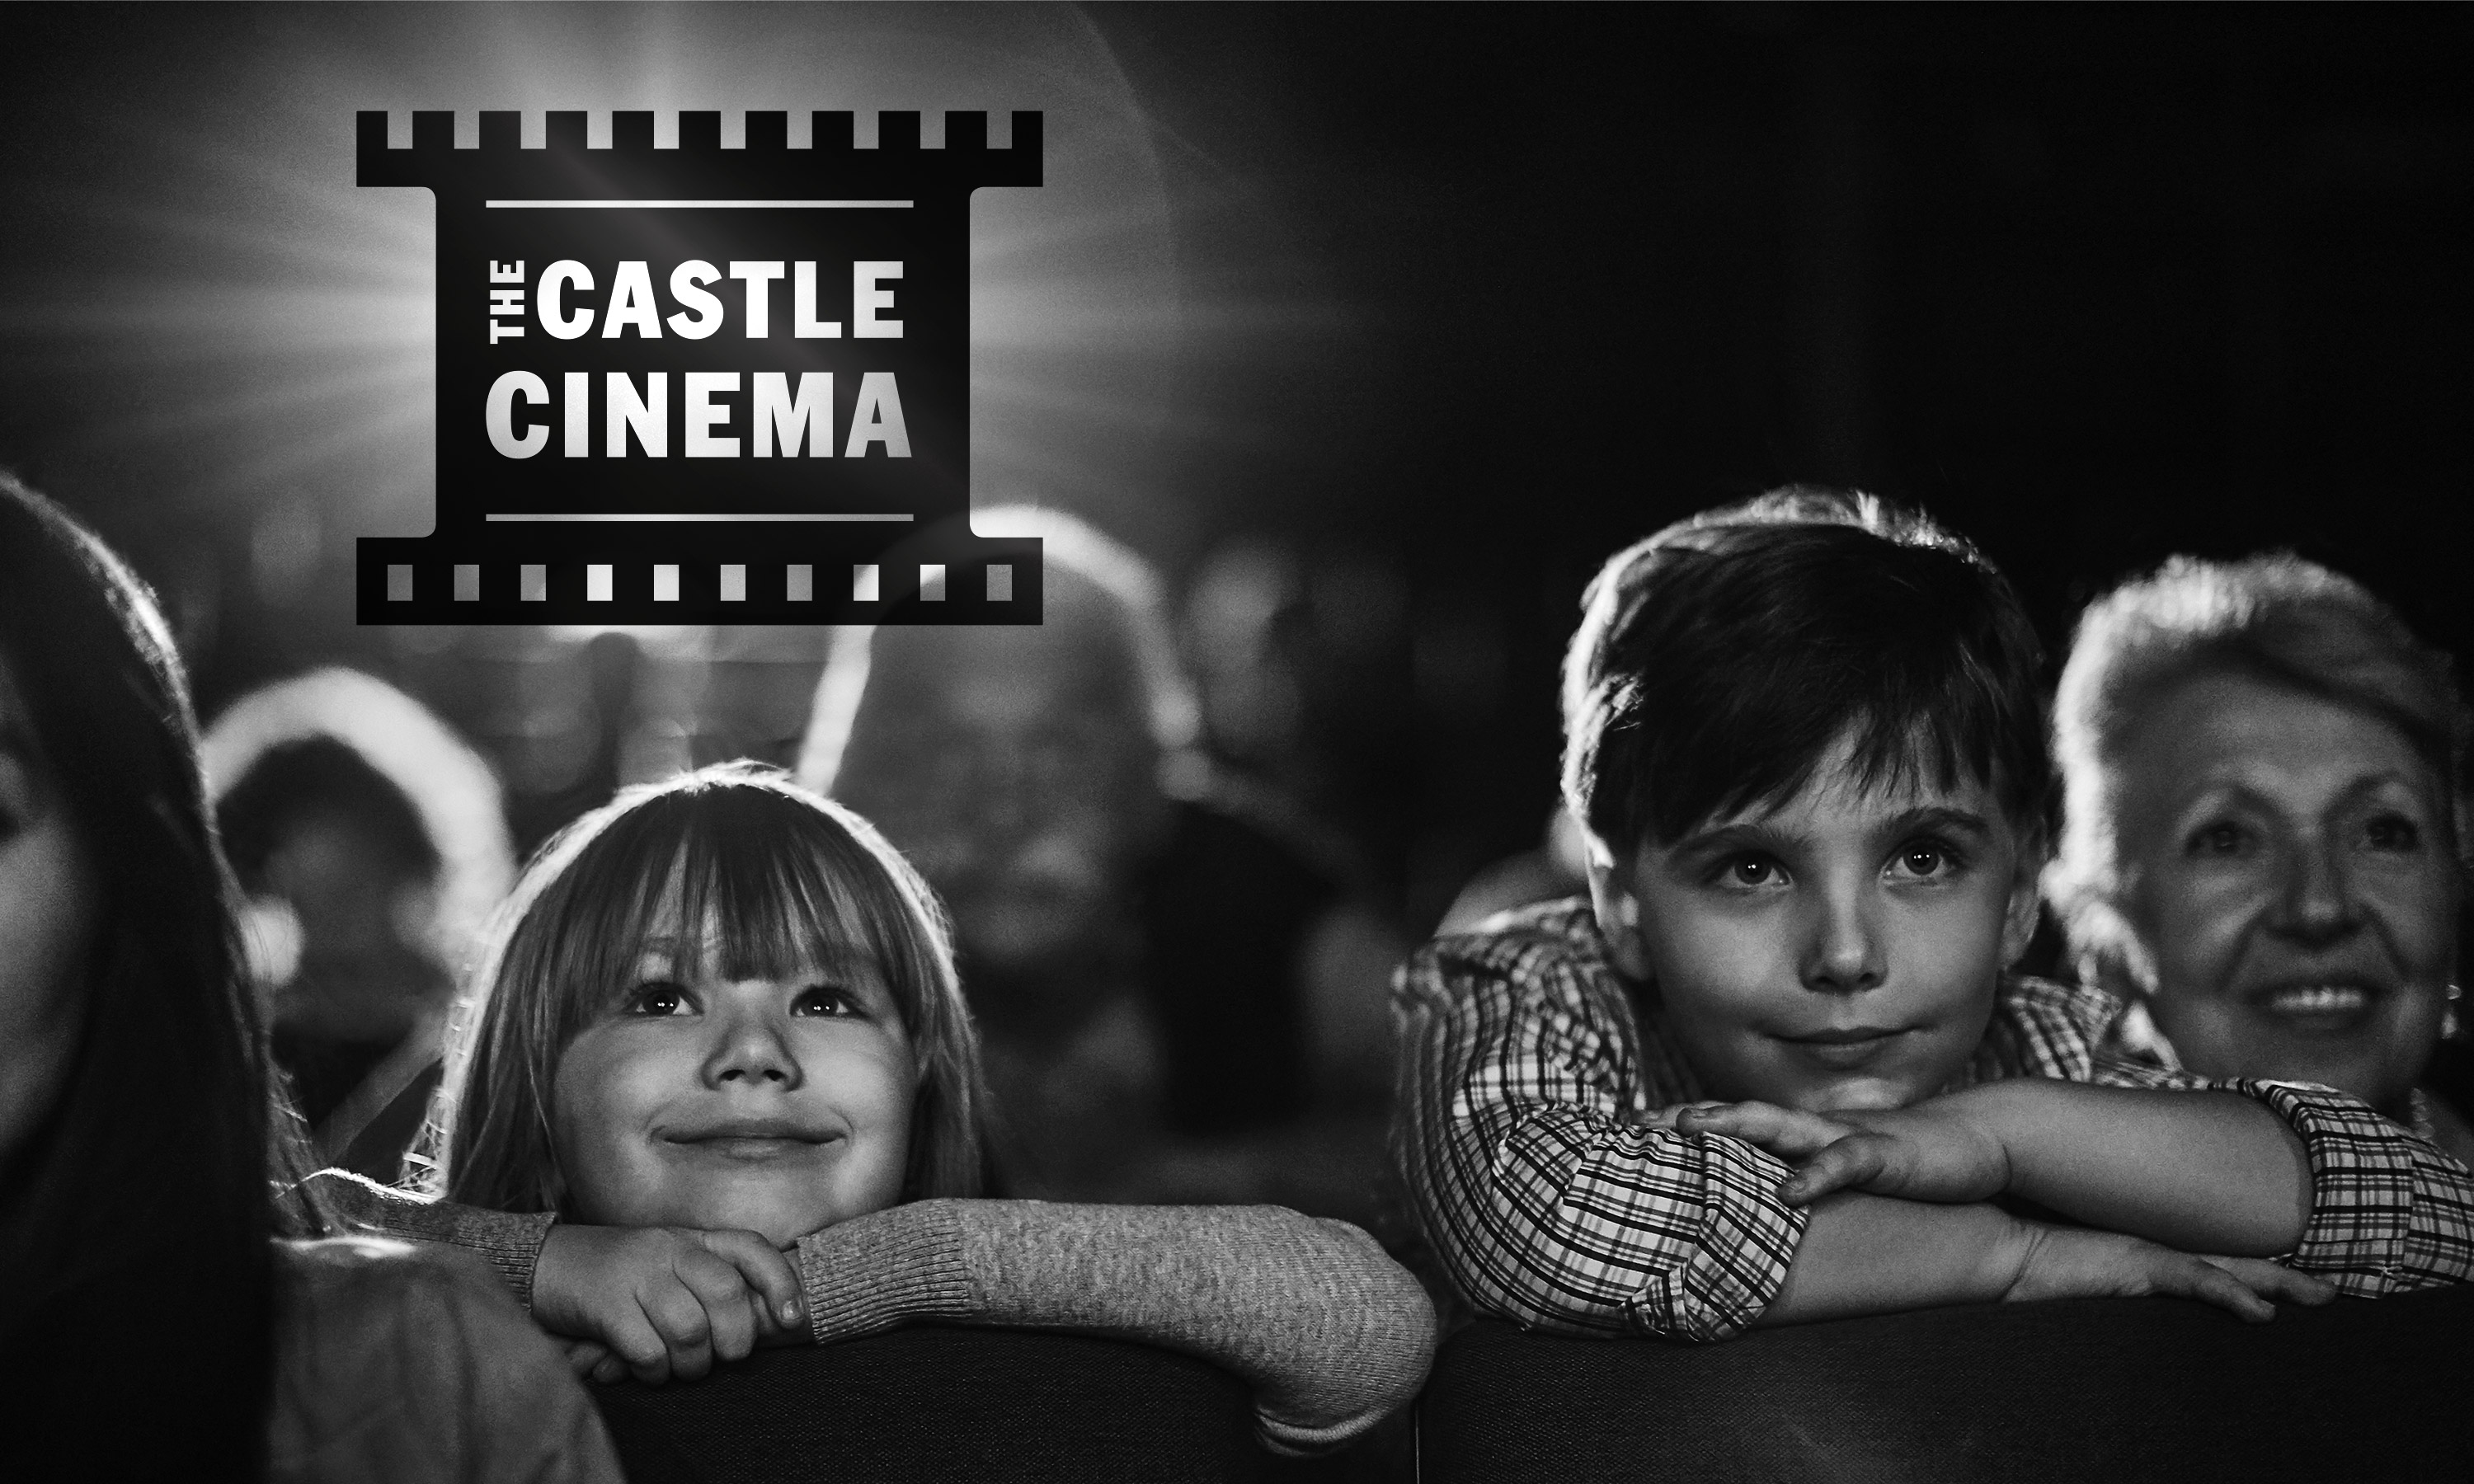 Branding by Neon Castle Cinema logo with audience designed by Dana Robertson